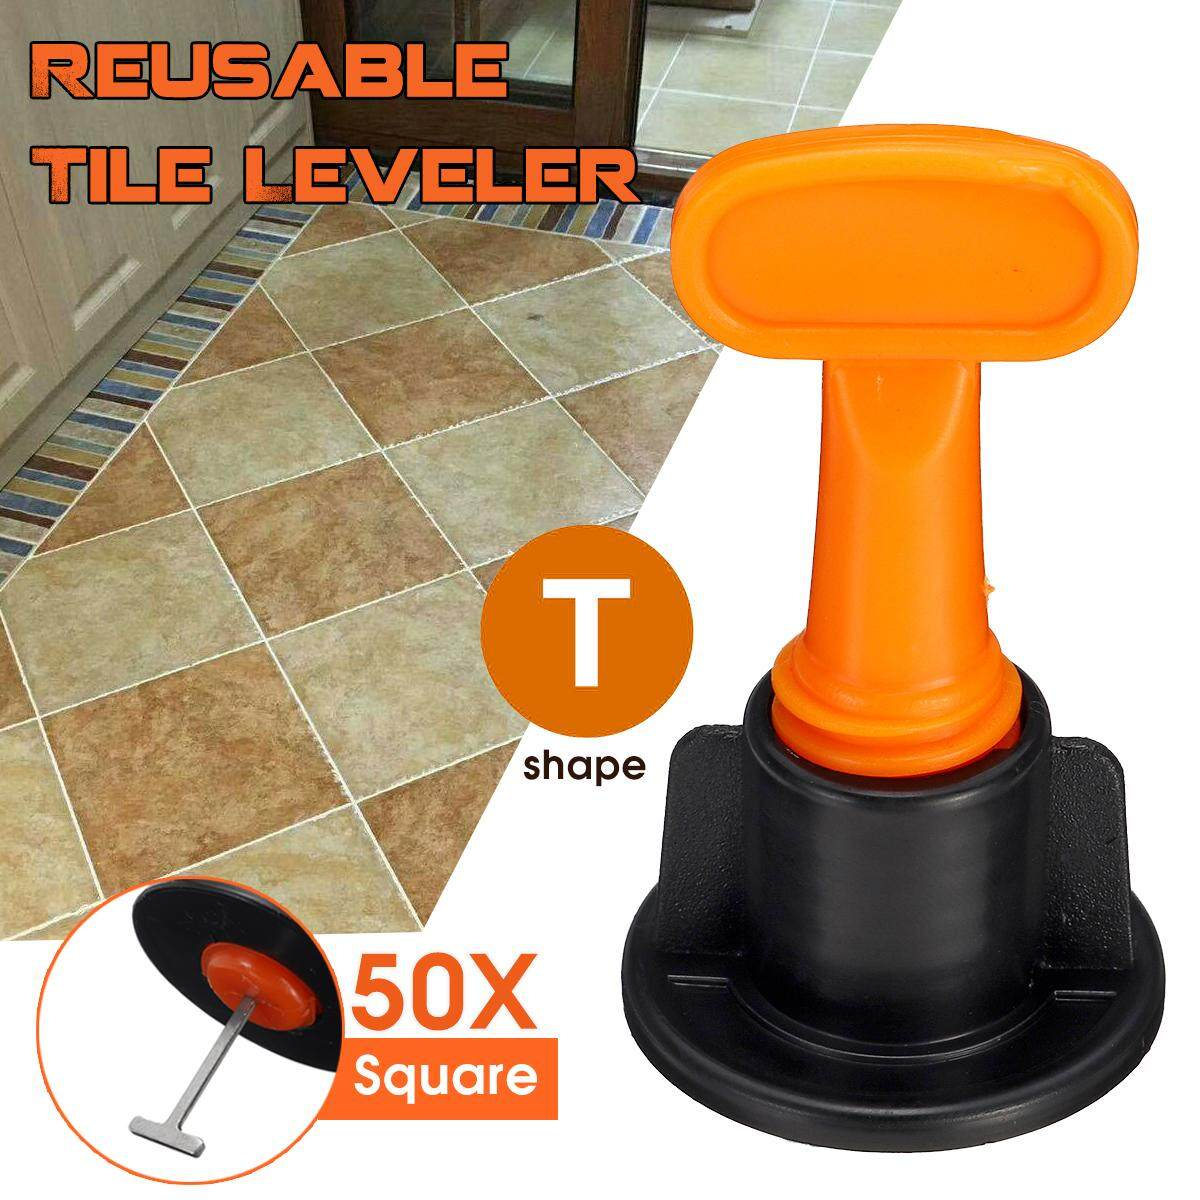 50pcs Ceramic Leveler Floor Wall Construction Tool Reusable Tile Leveling System